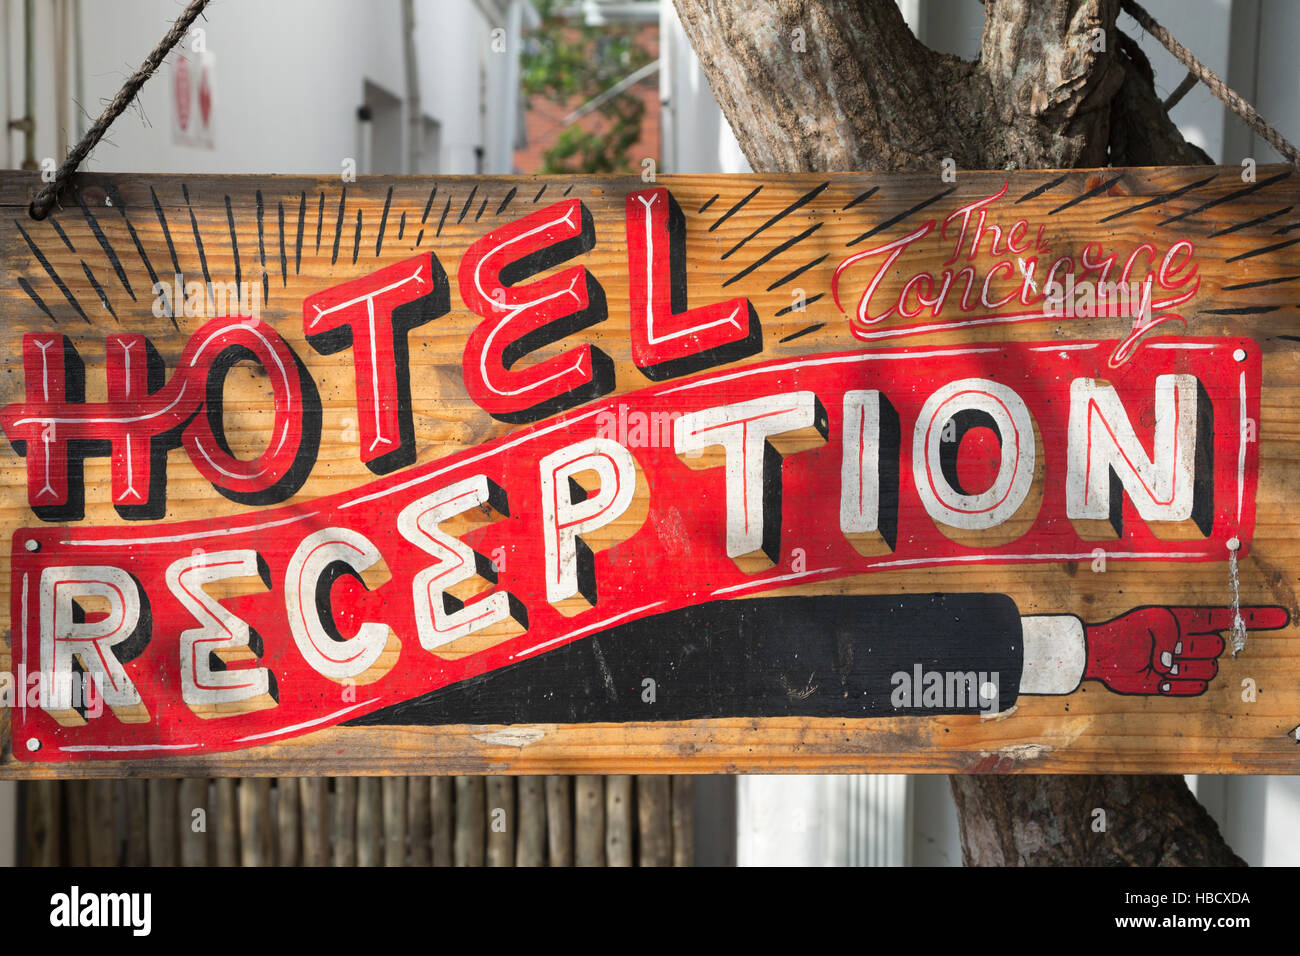 Freedom cafe at Concierge Boutique Bungalows, sign for reception, Durban, KwaZulu-Natal, South Africa, - Stock Image